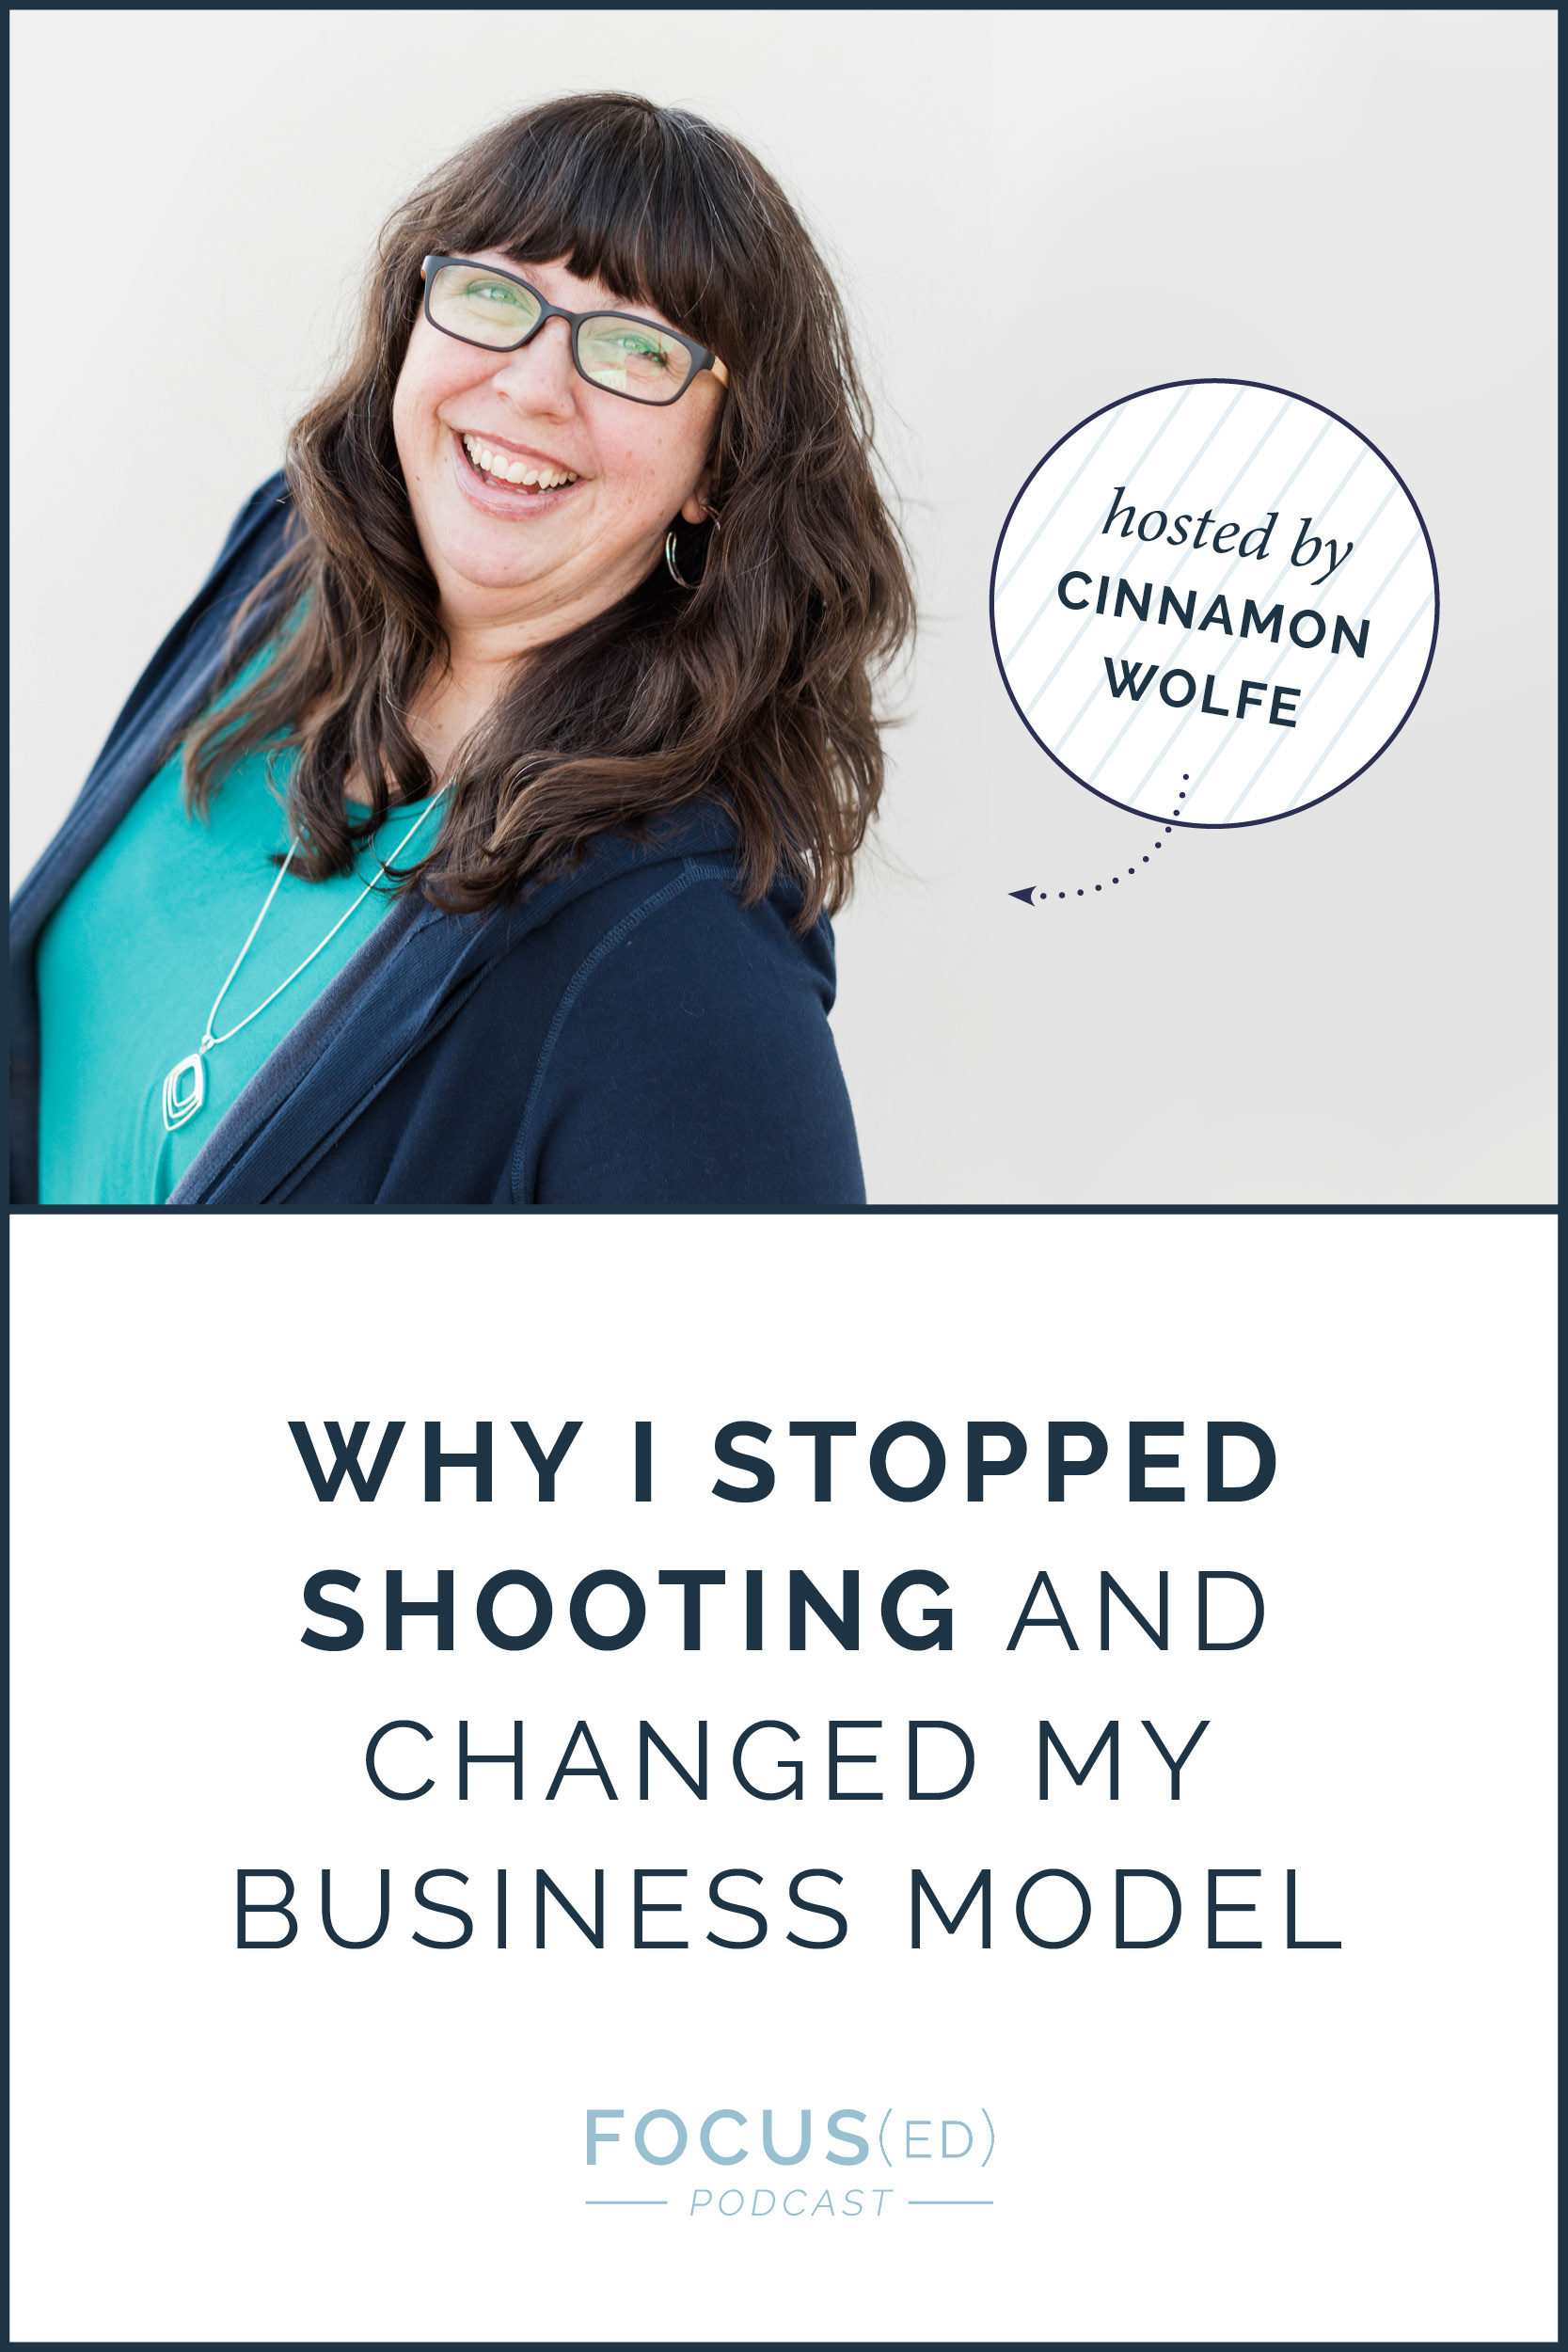 Why I stopped shooting and changed my business model  |  Focused Podcast